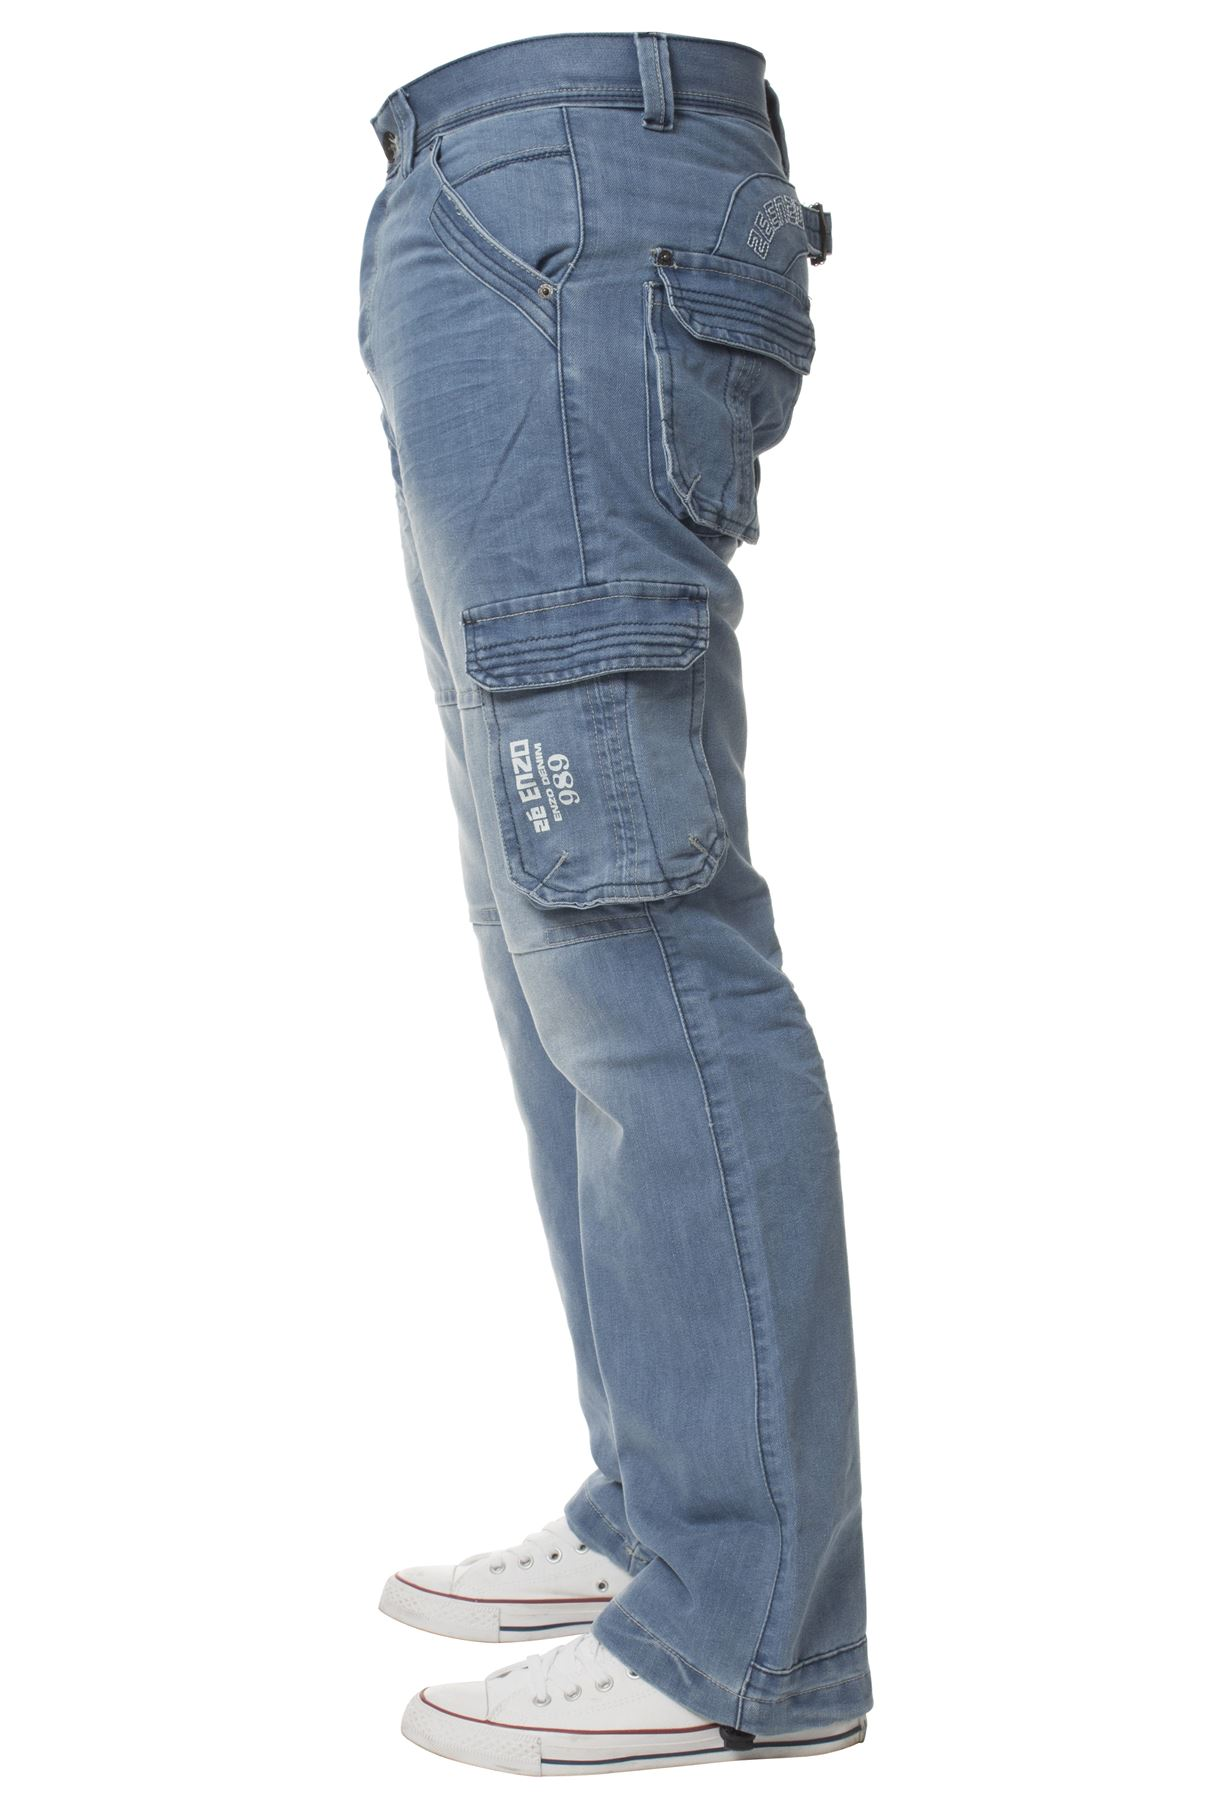 Enzo-Mens-Cargo-Combat-Trousers-Jeans-Work-Casual-Denim-Pants-Big-Tall-All-Waist thumbnail 15